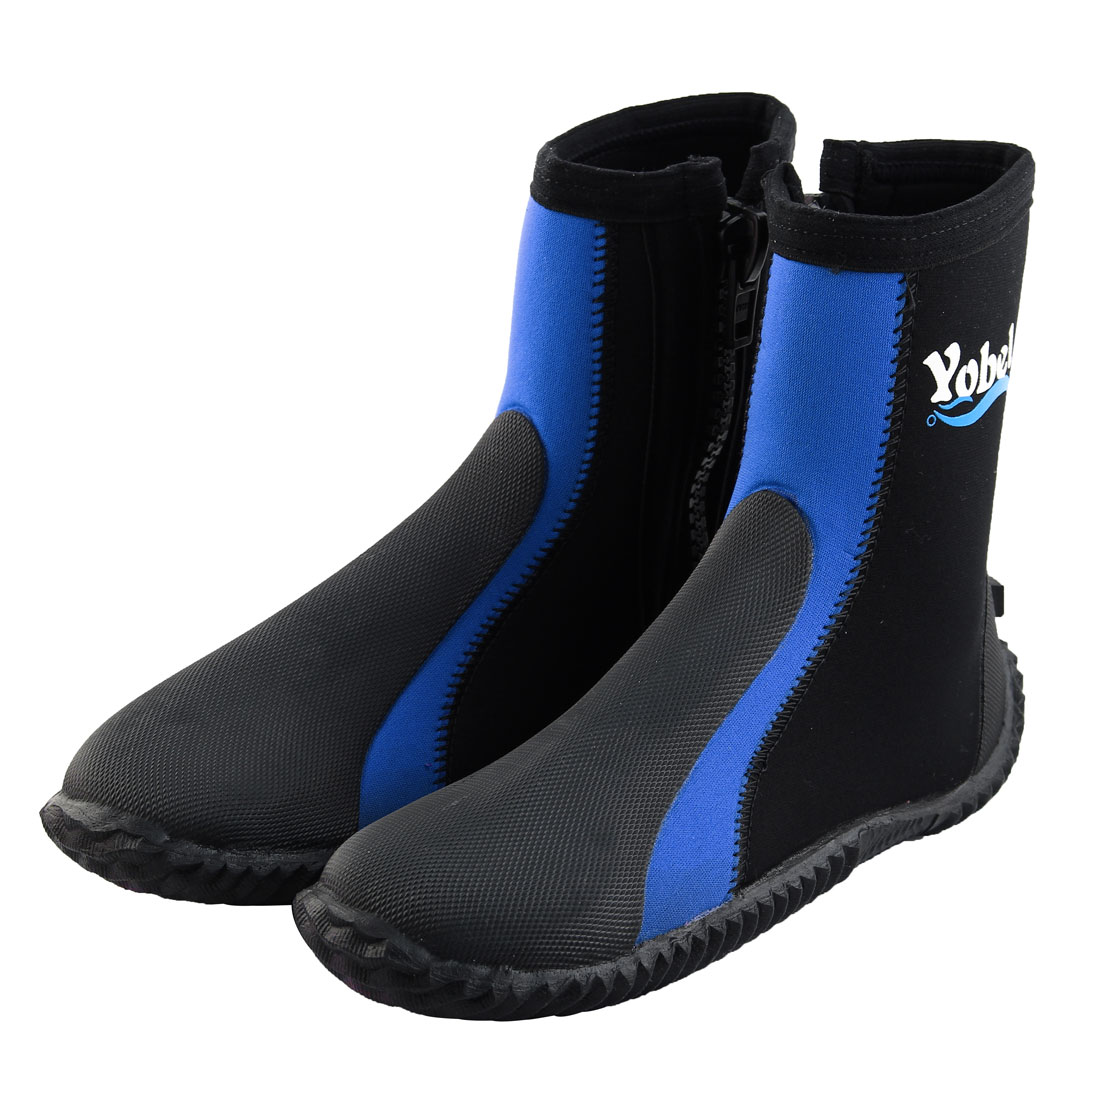 Outdoor Diving Surfing Beach Winter Swimming Anti-slip Wetsuits Water Shoes Boots US 9 Pair Blue by Unique-Bargains